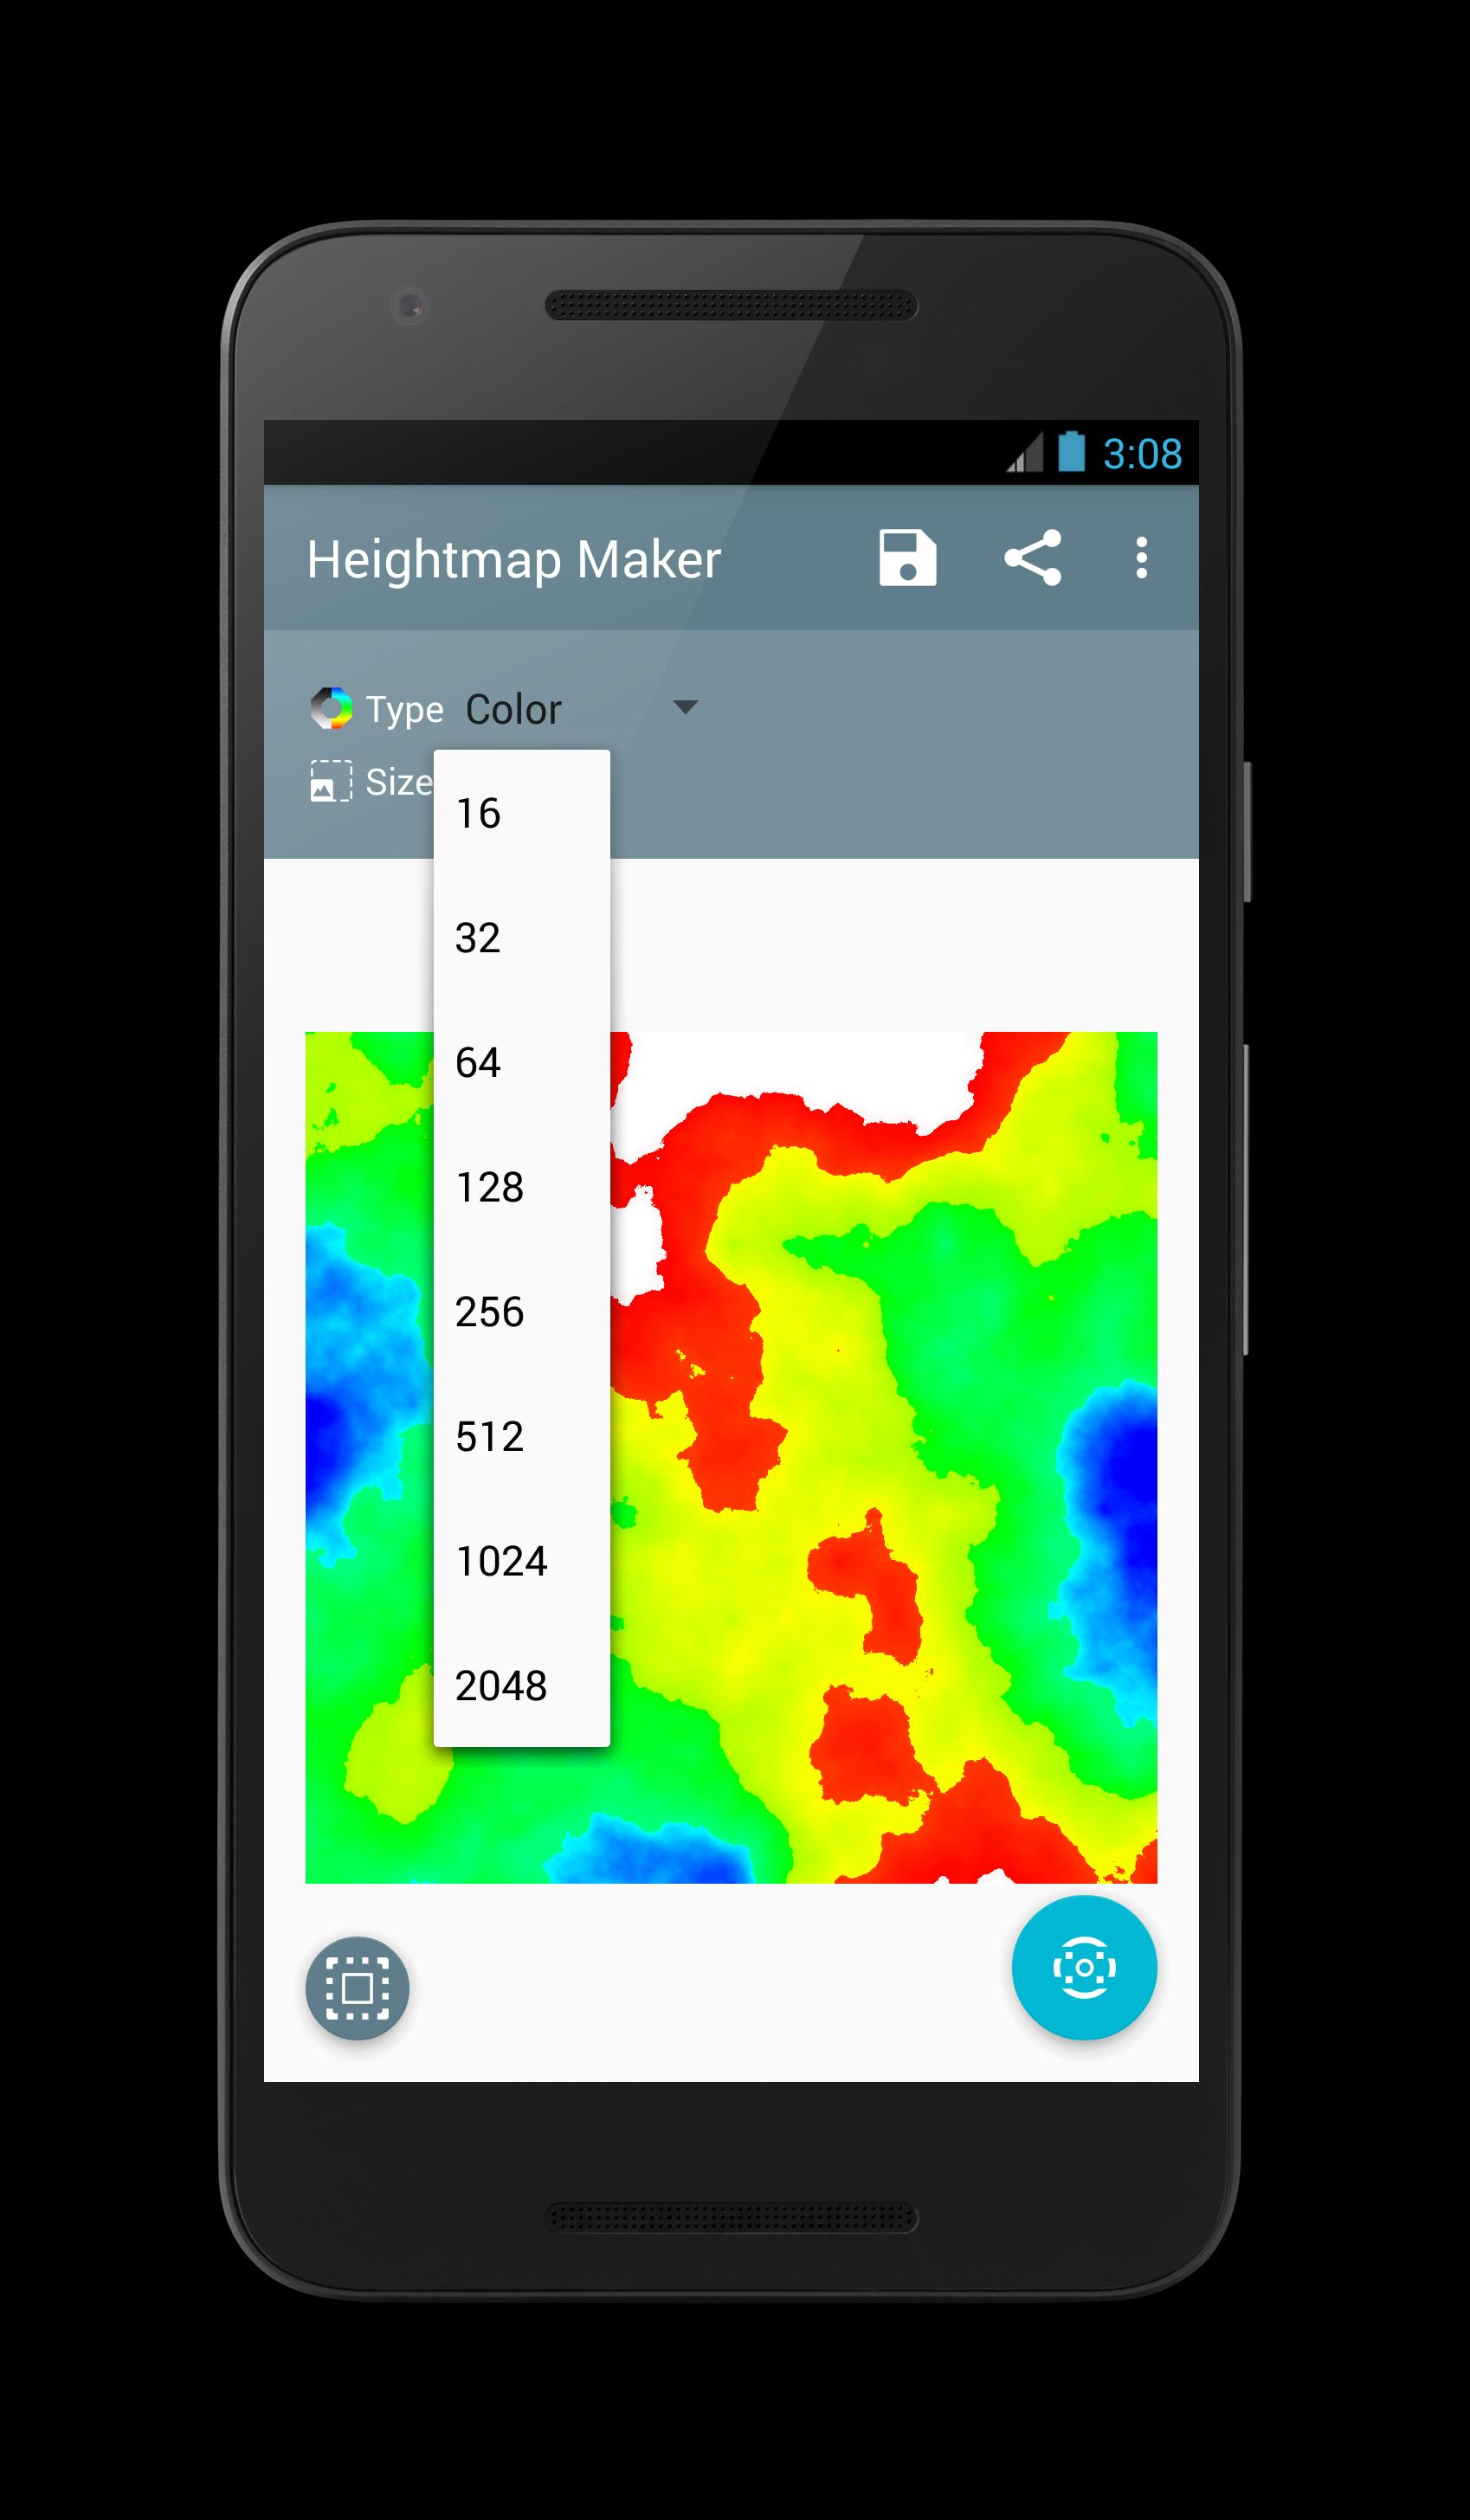 Heightmap Maker for Android - APK Download